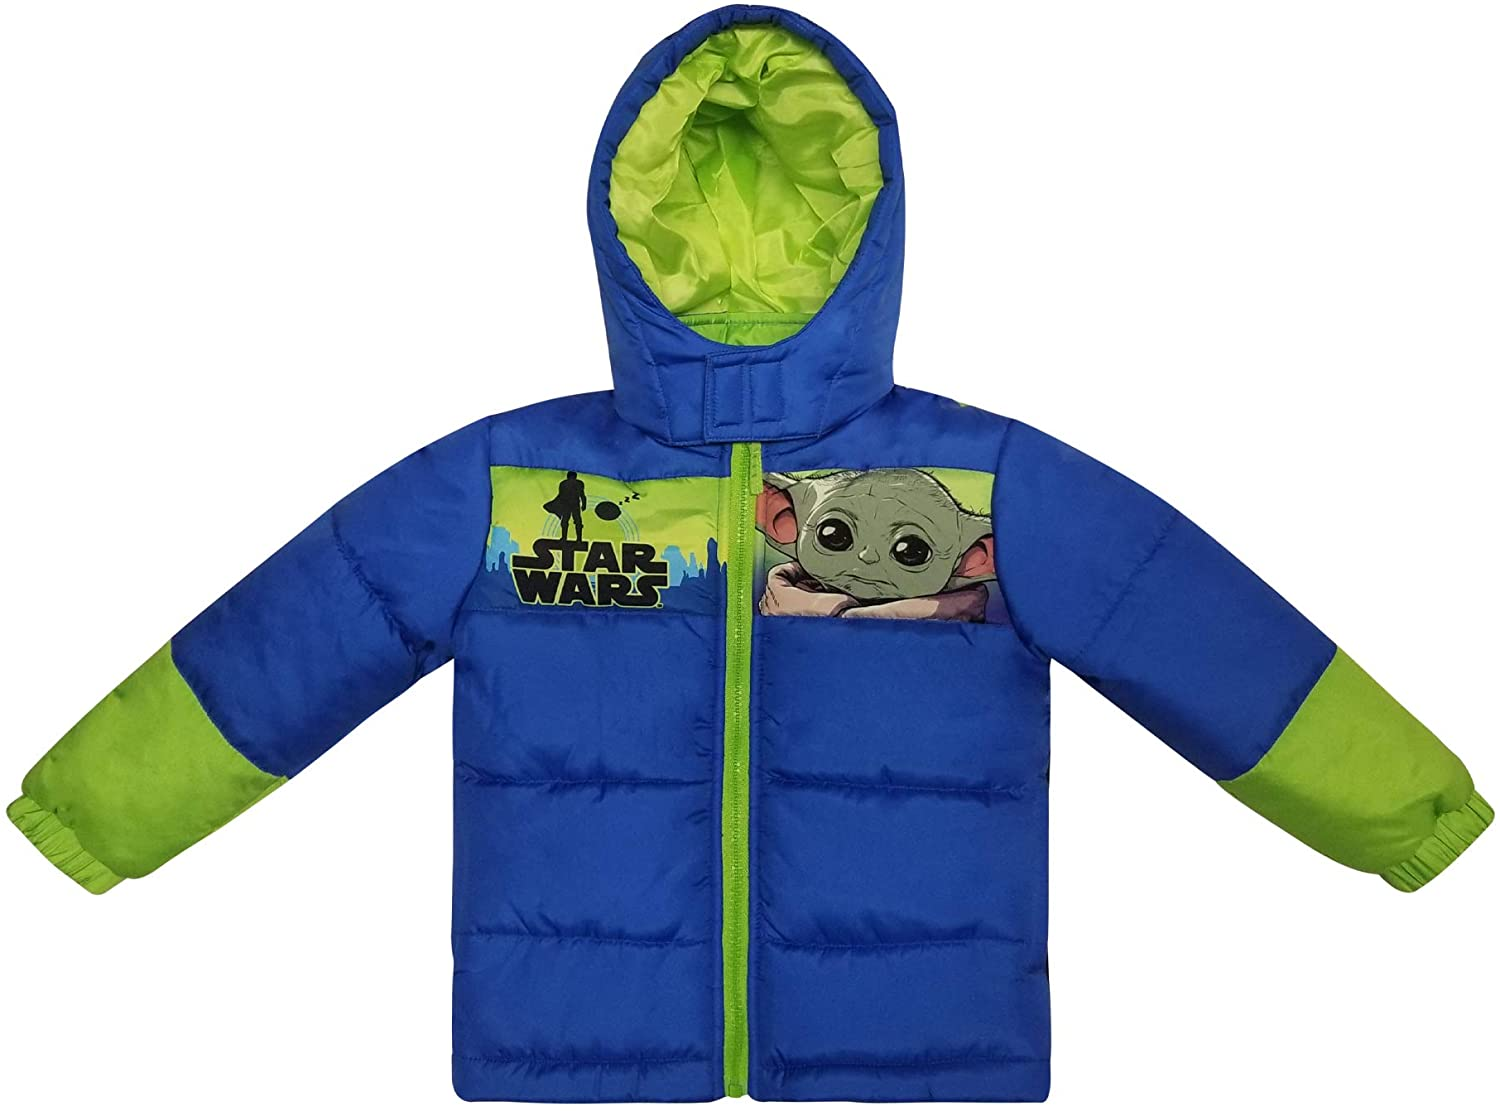 Dreamwave Toddler Boys Warm Winter Puffer Jacket Coat Baby Yoda